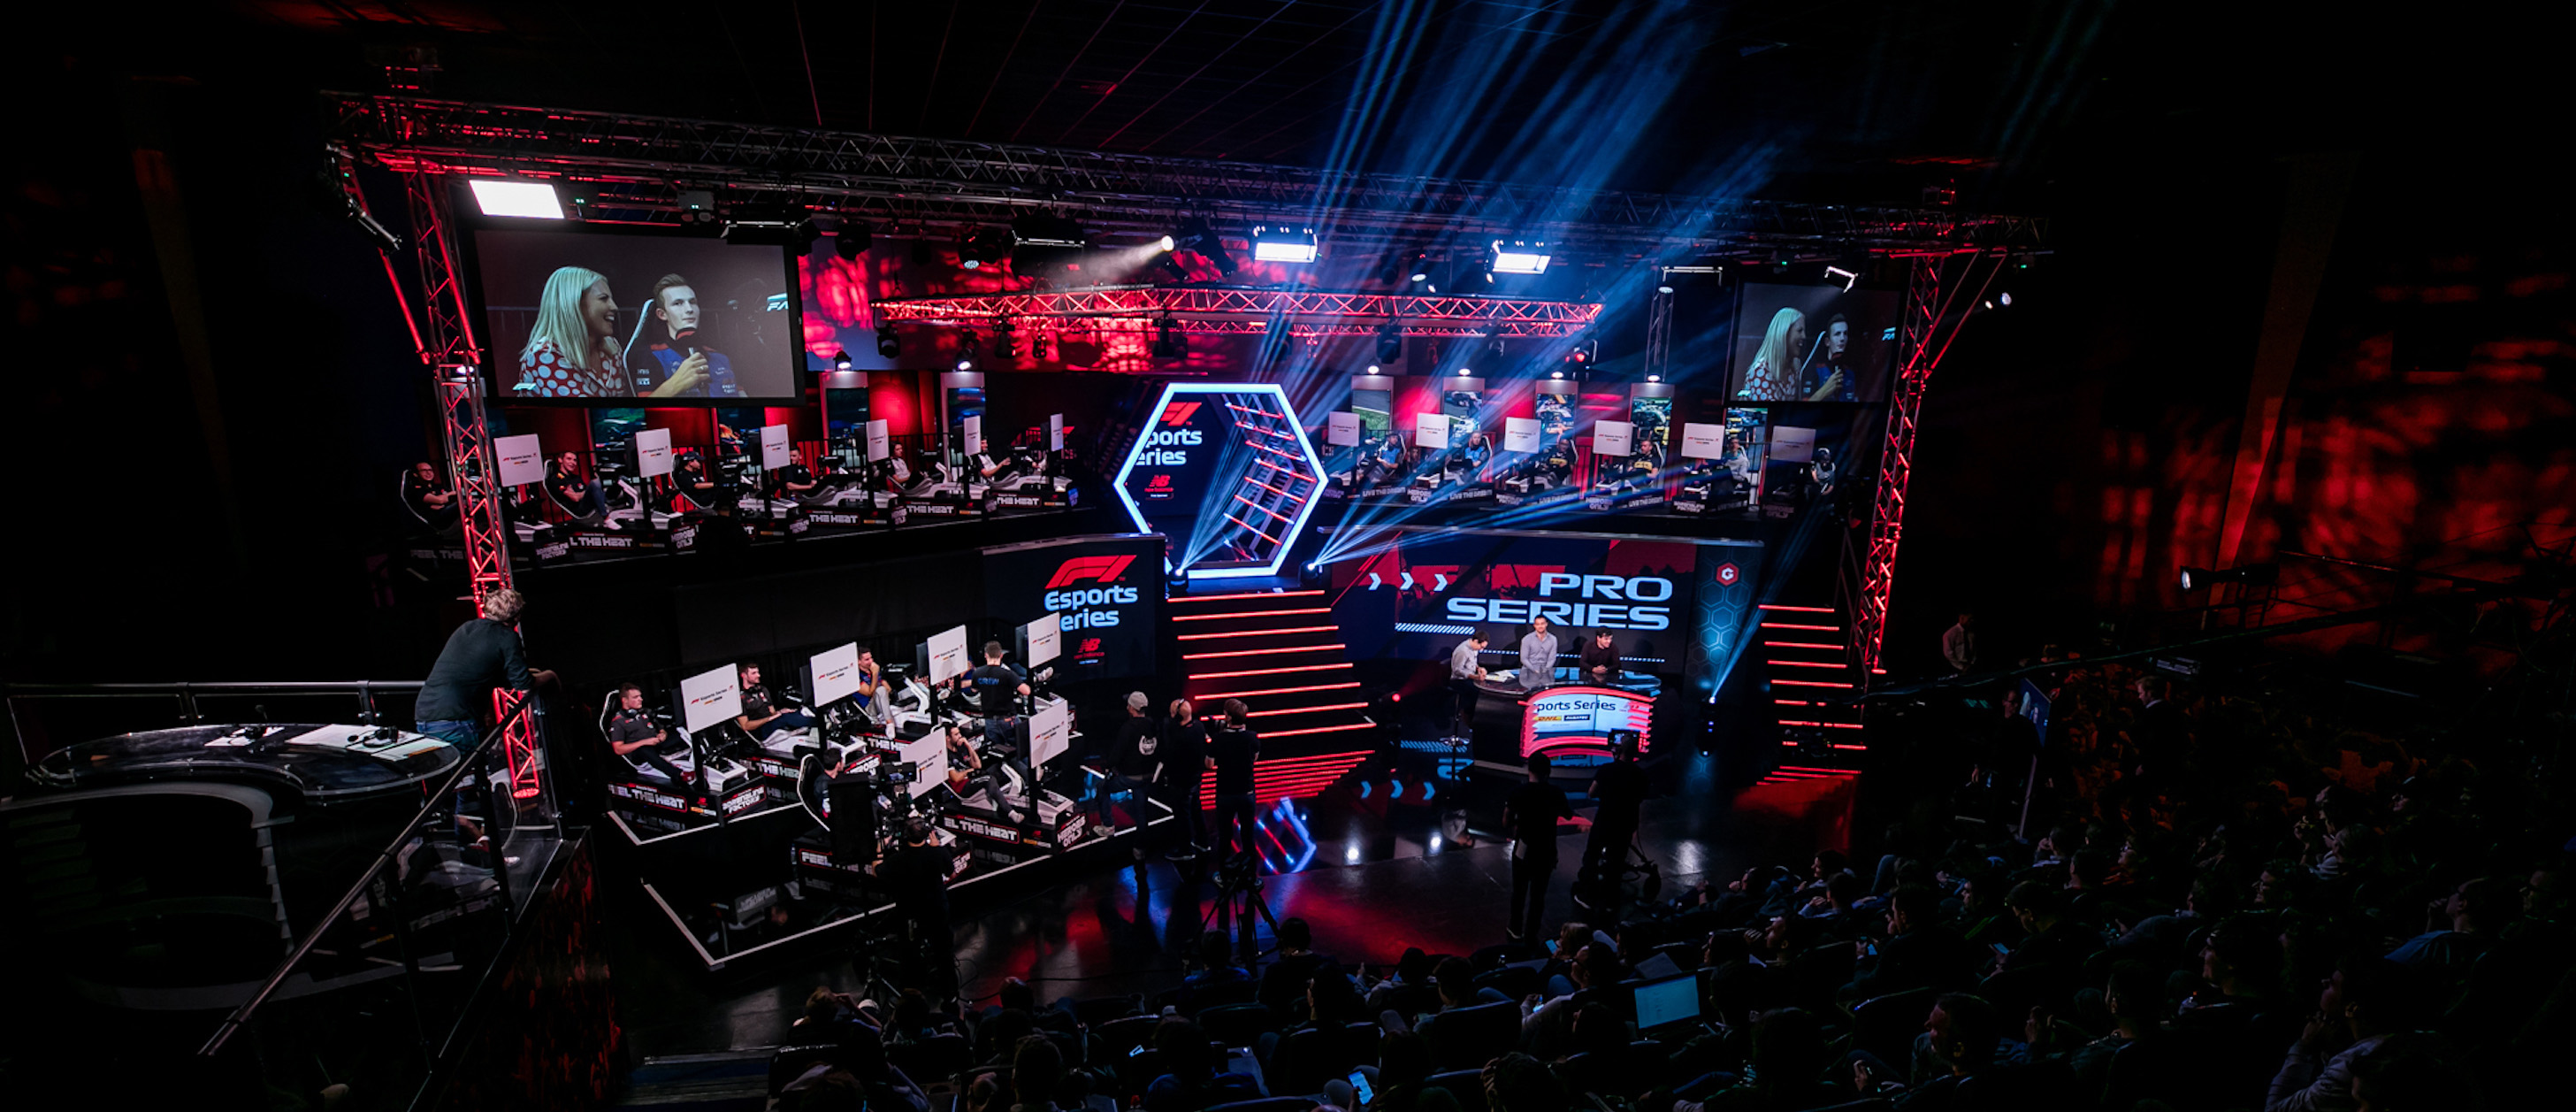 What's New In F1 Esports For 2019?